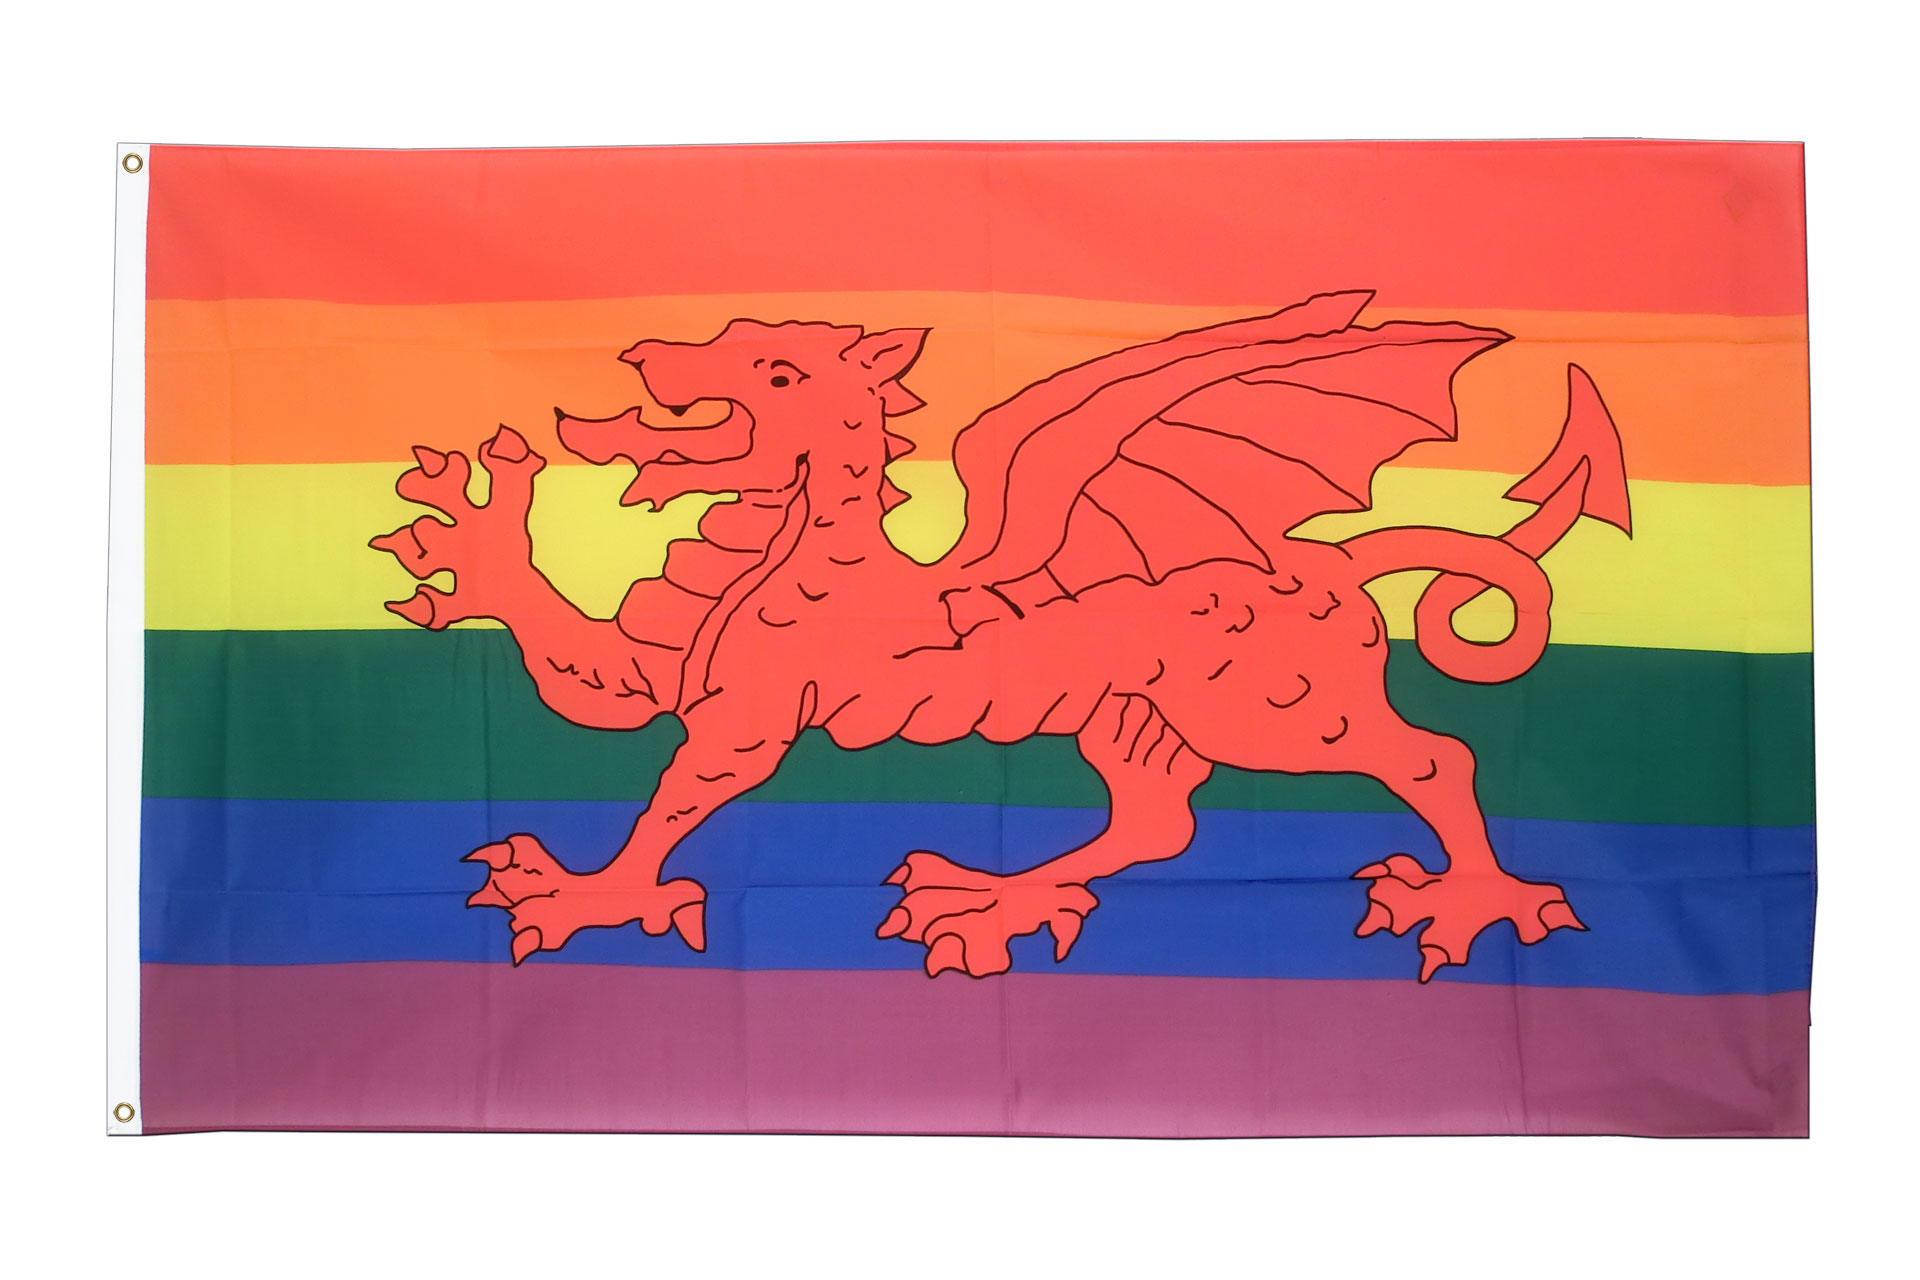 top flag wales dragon images for pinterest tattoos. Black Bedroom Furniture Sets. Home Design Ideas